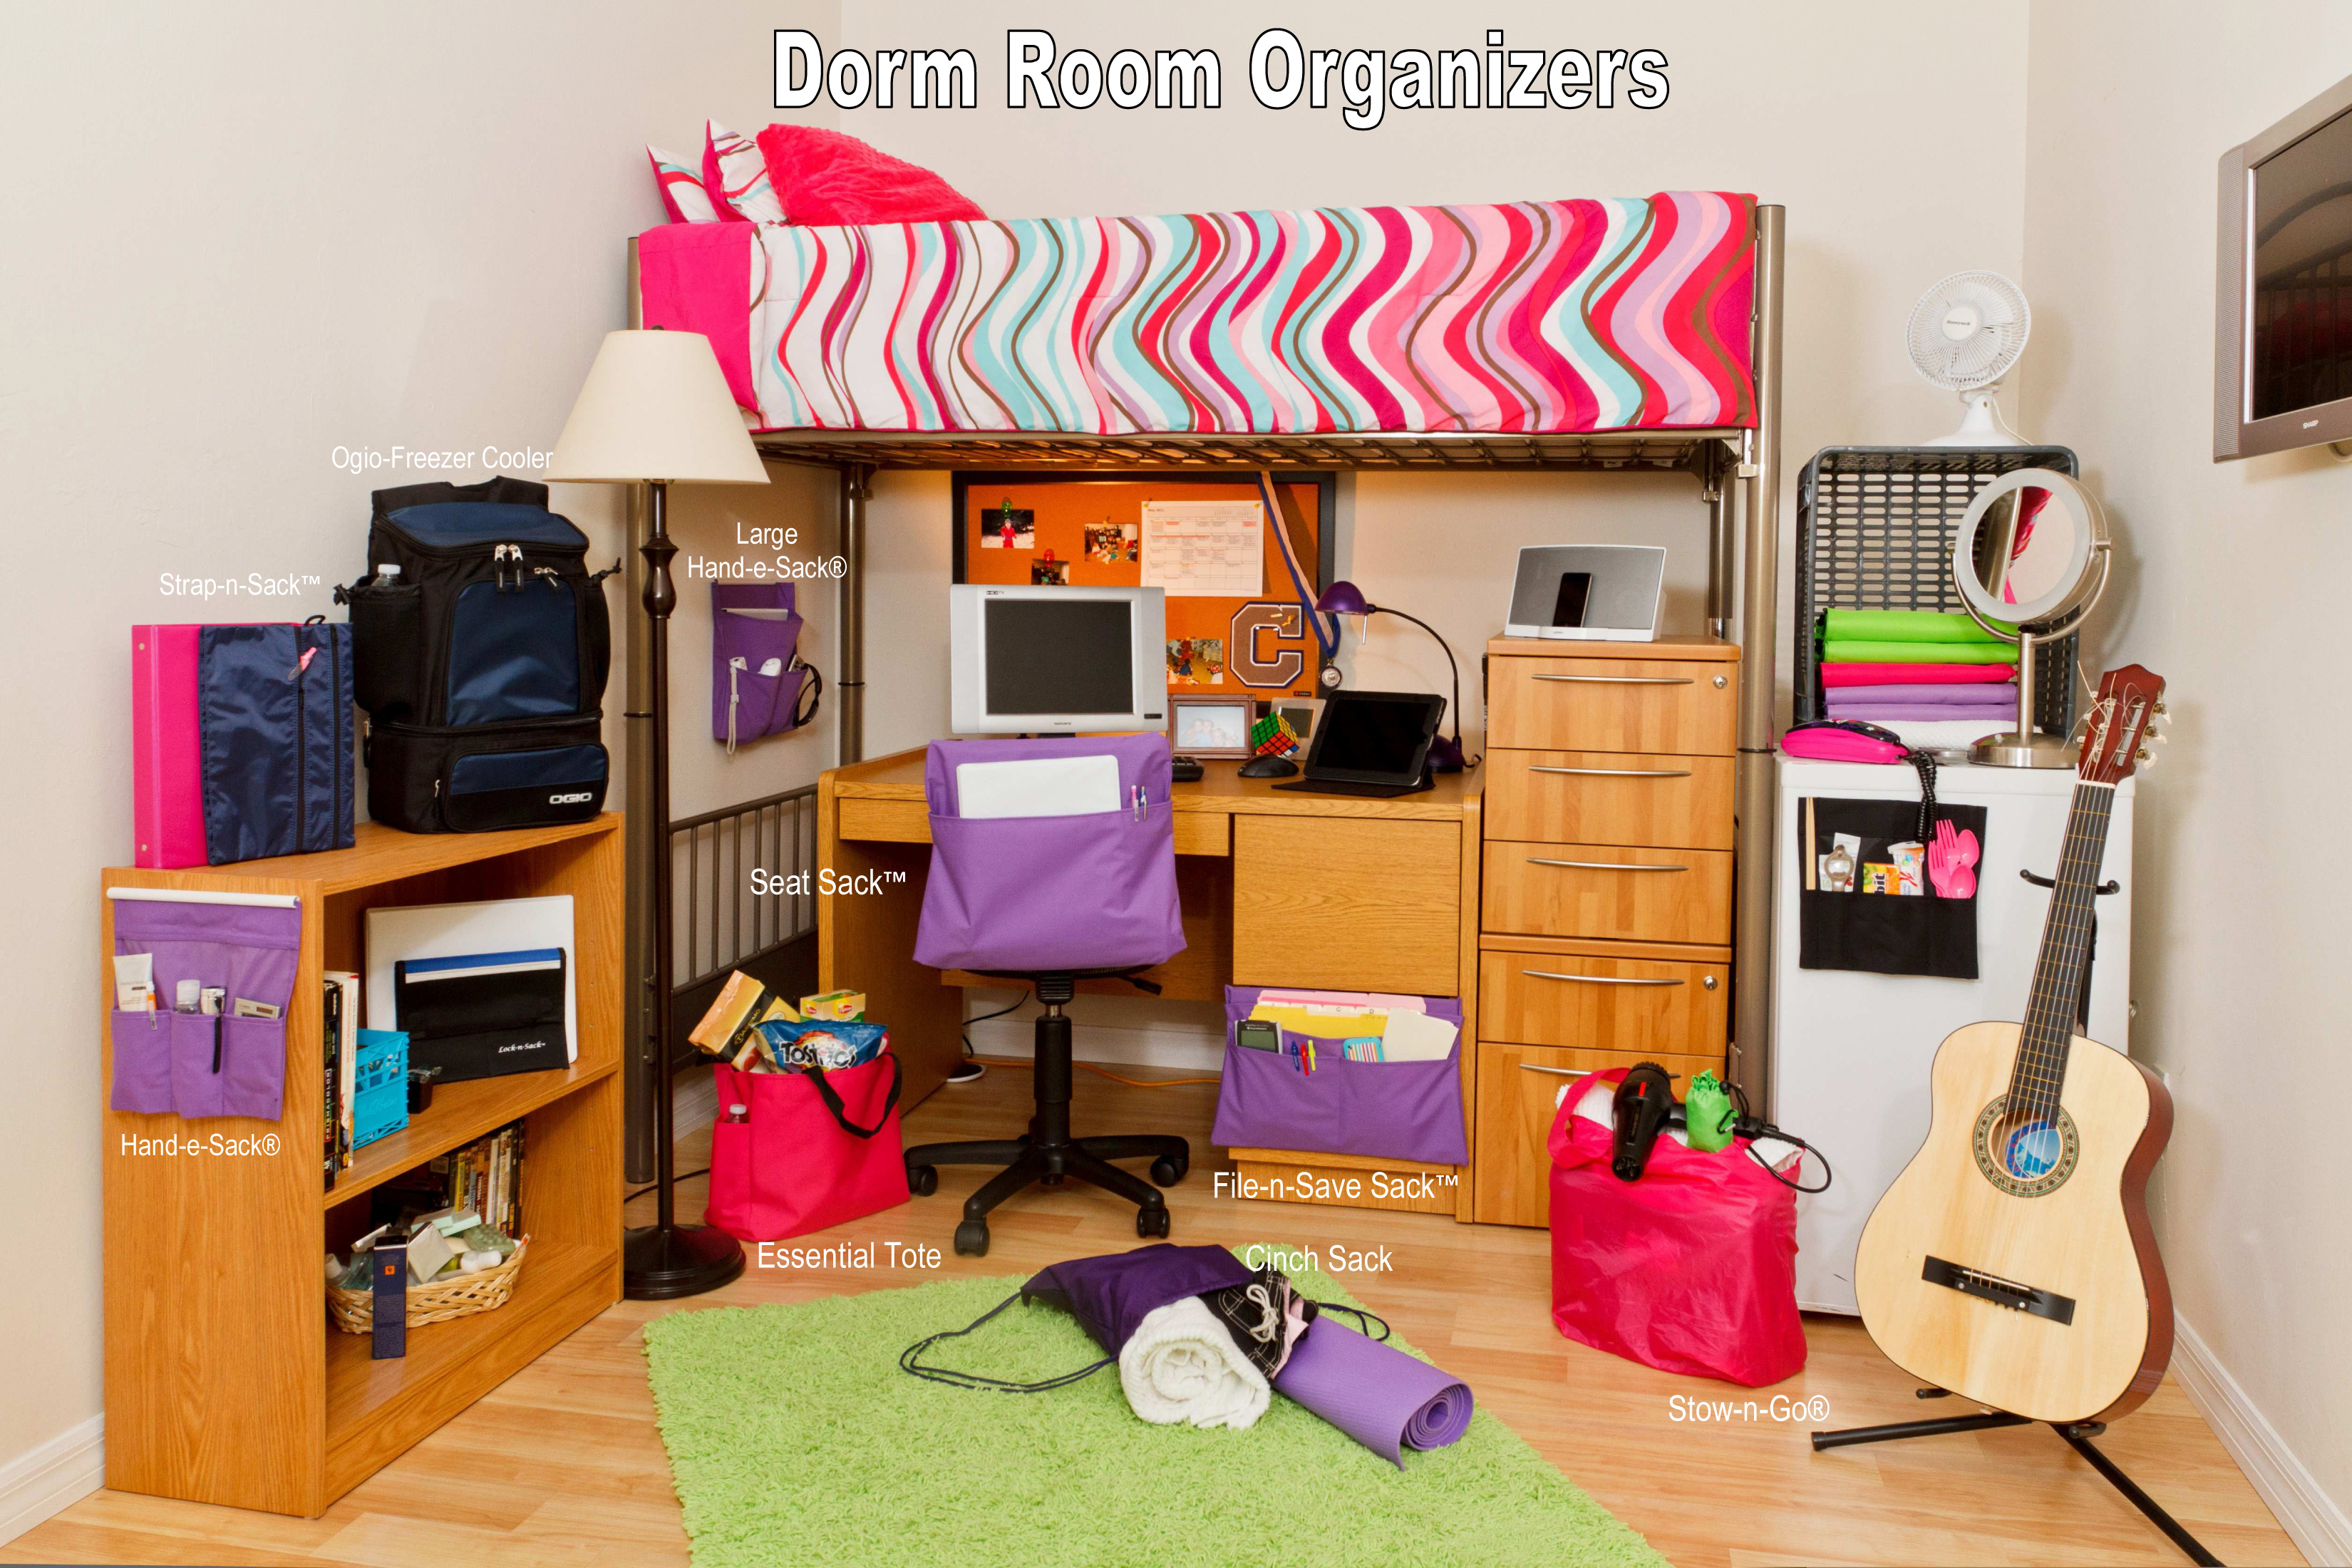 Dorm Room: Get Organized For Back To School With A Free Organizer